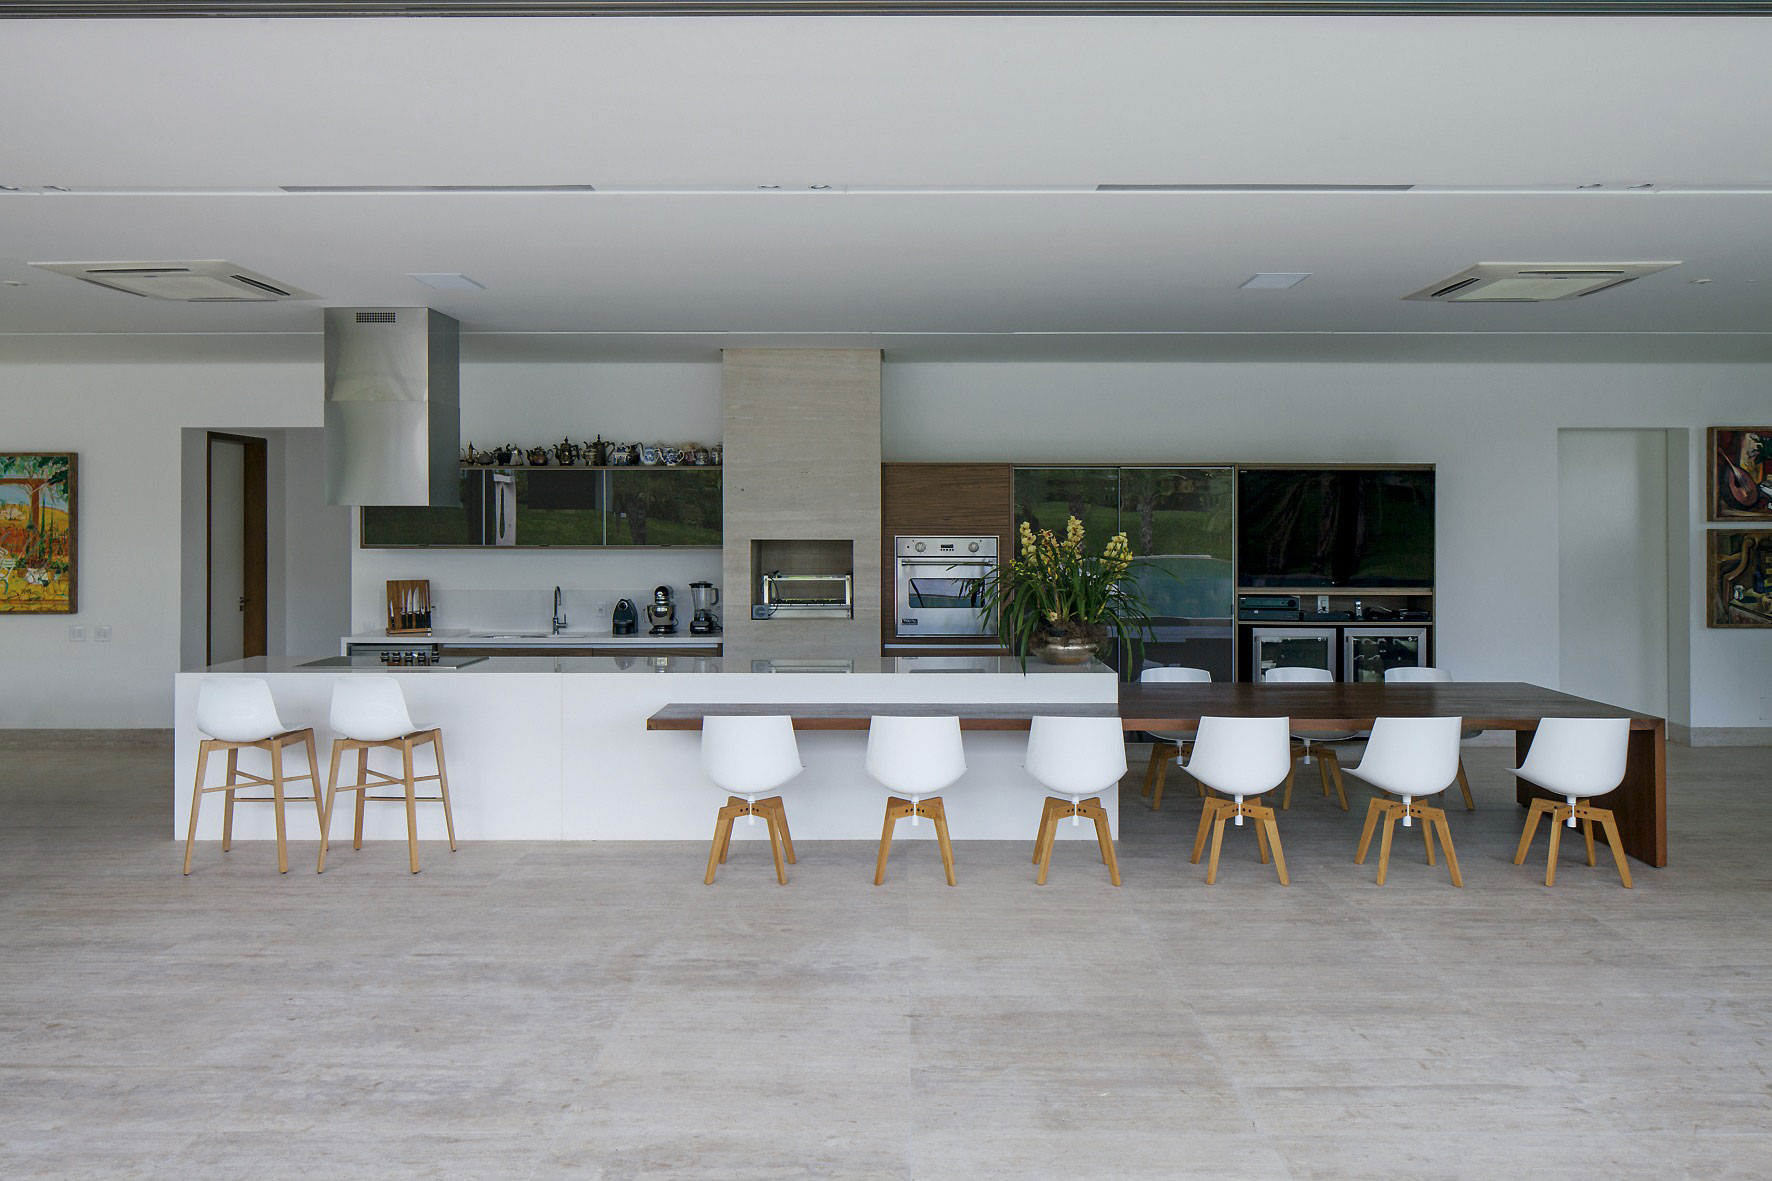 Kitchen, Breakfast Bar, Dining Table, Home in Uberlandia, Brazil